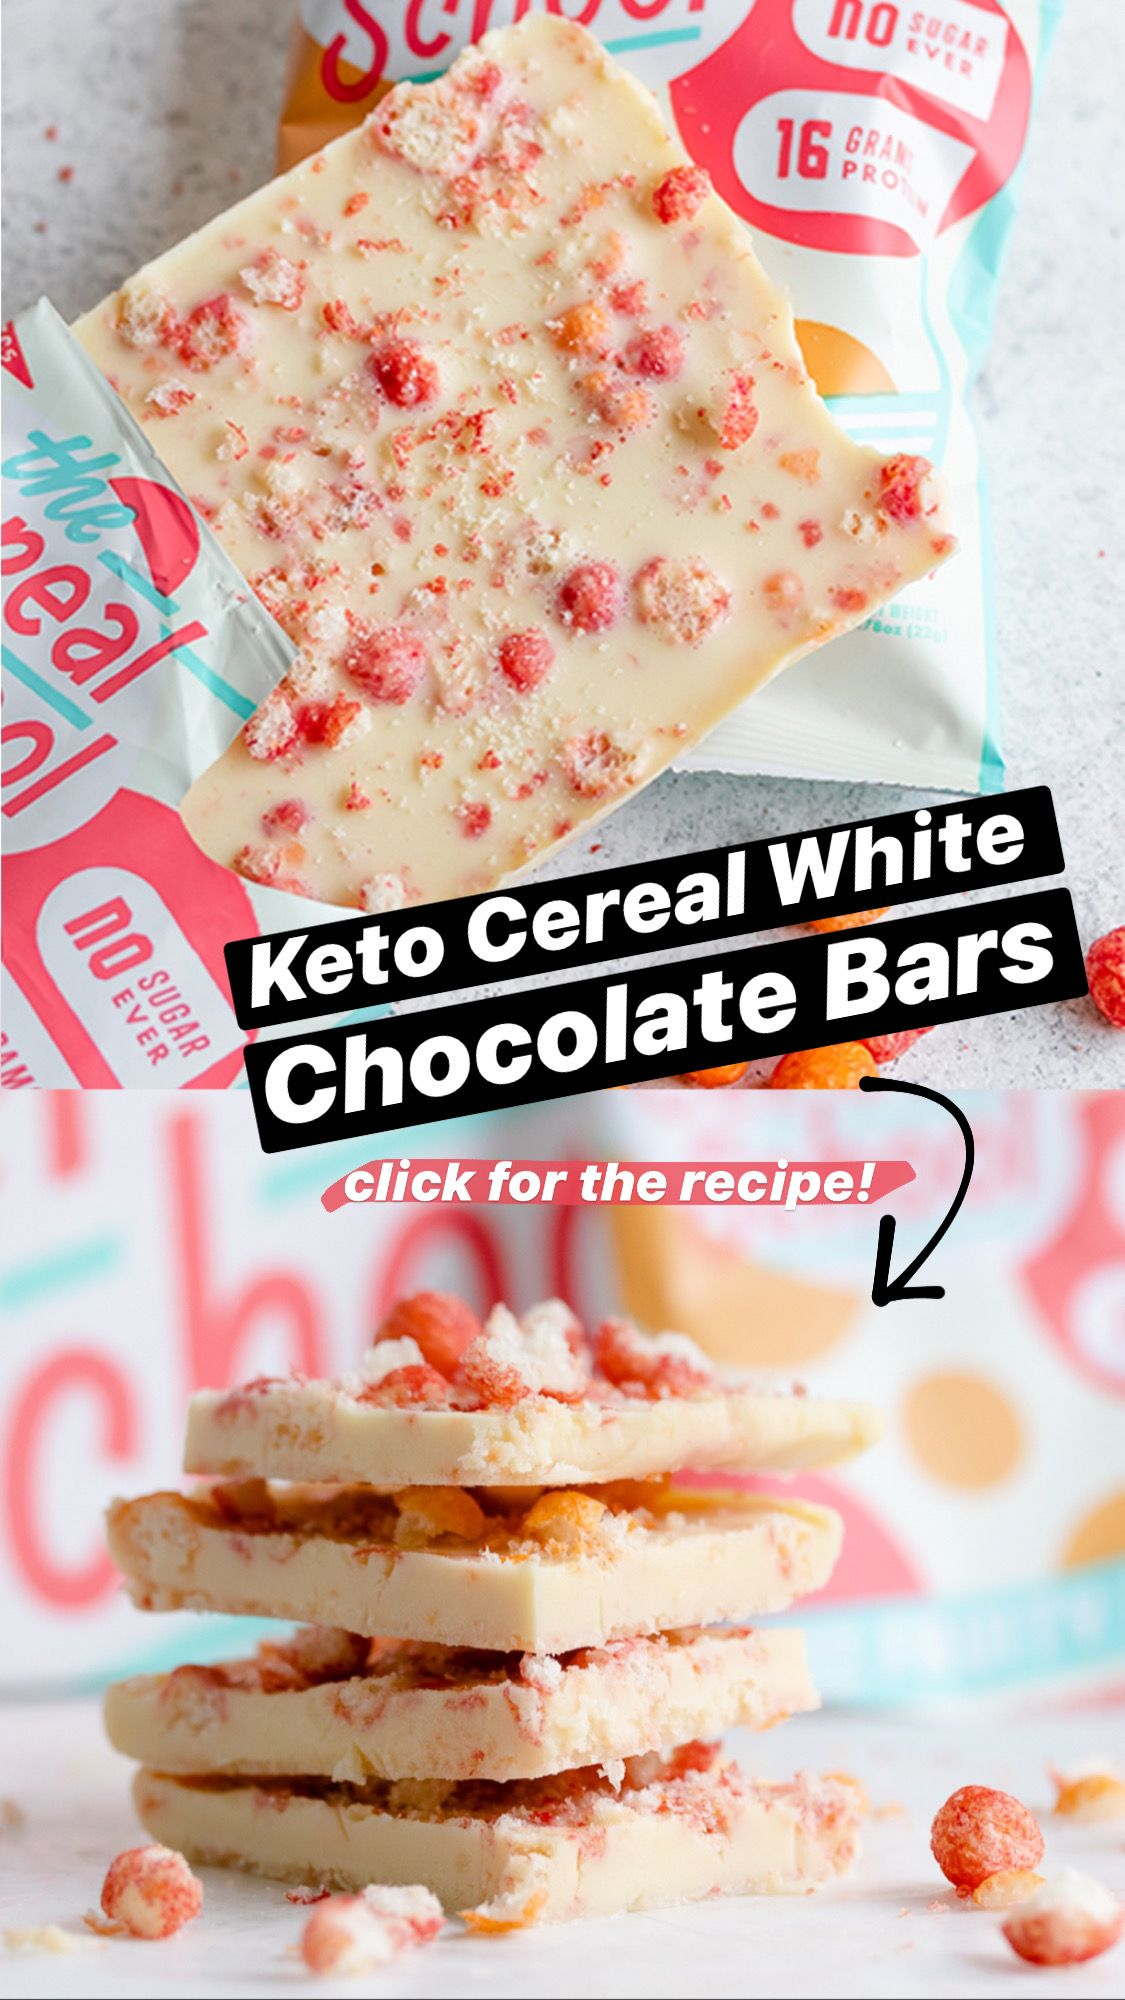 Keto Cereal White Chocolate Bars In 2020 Keto Cereal Low Carb Chocolate Cereal Flavors